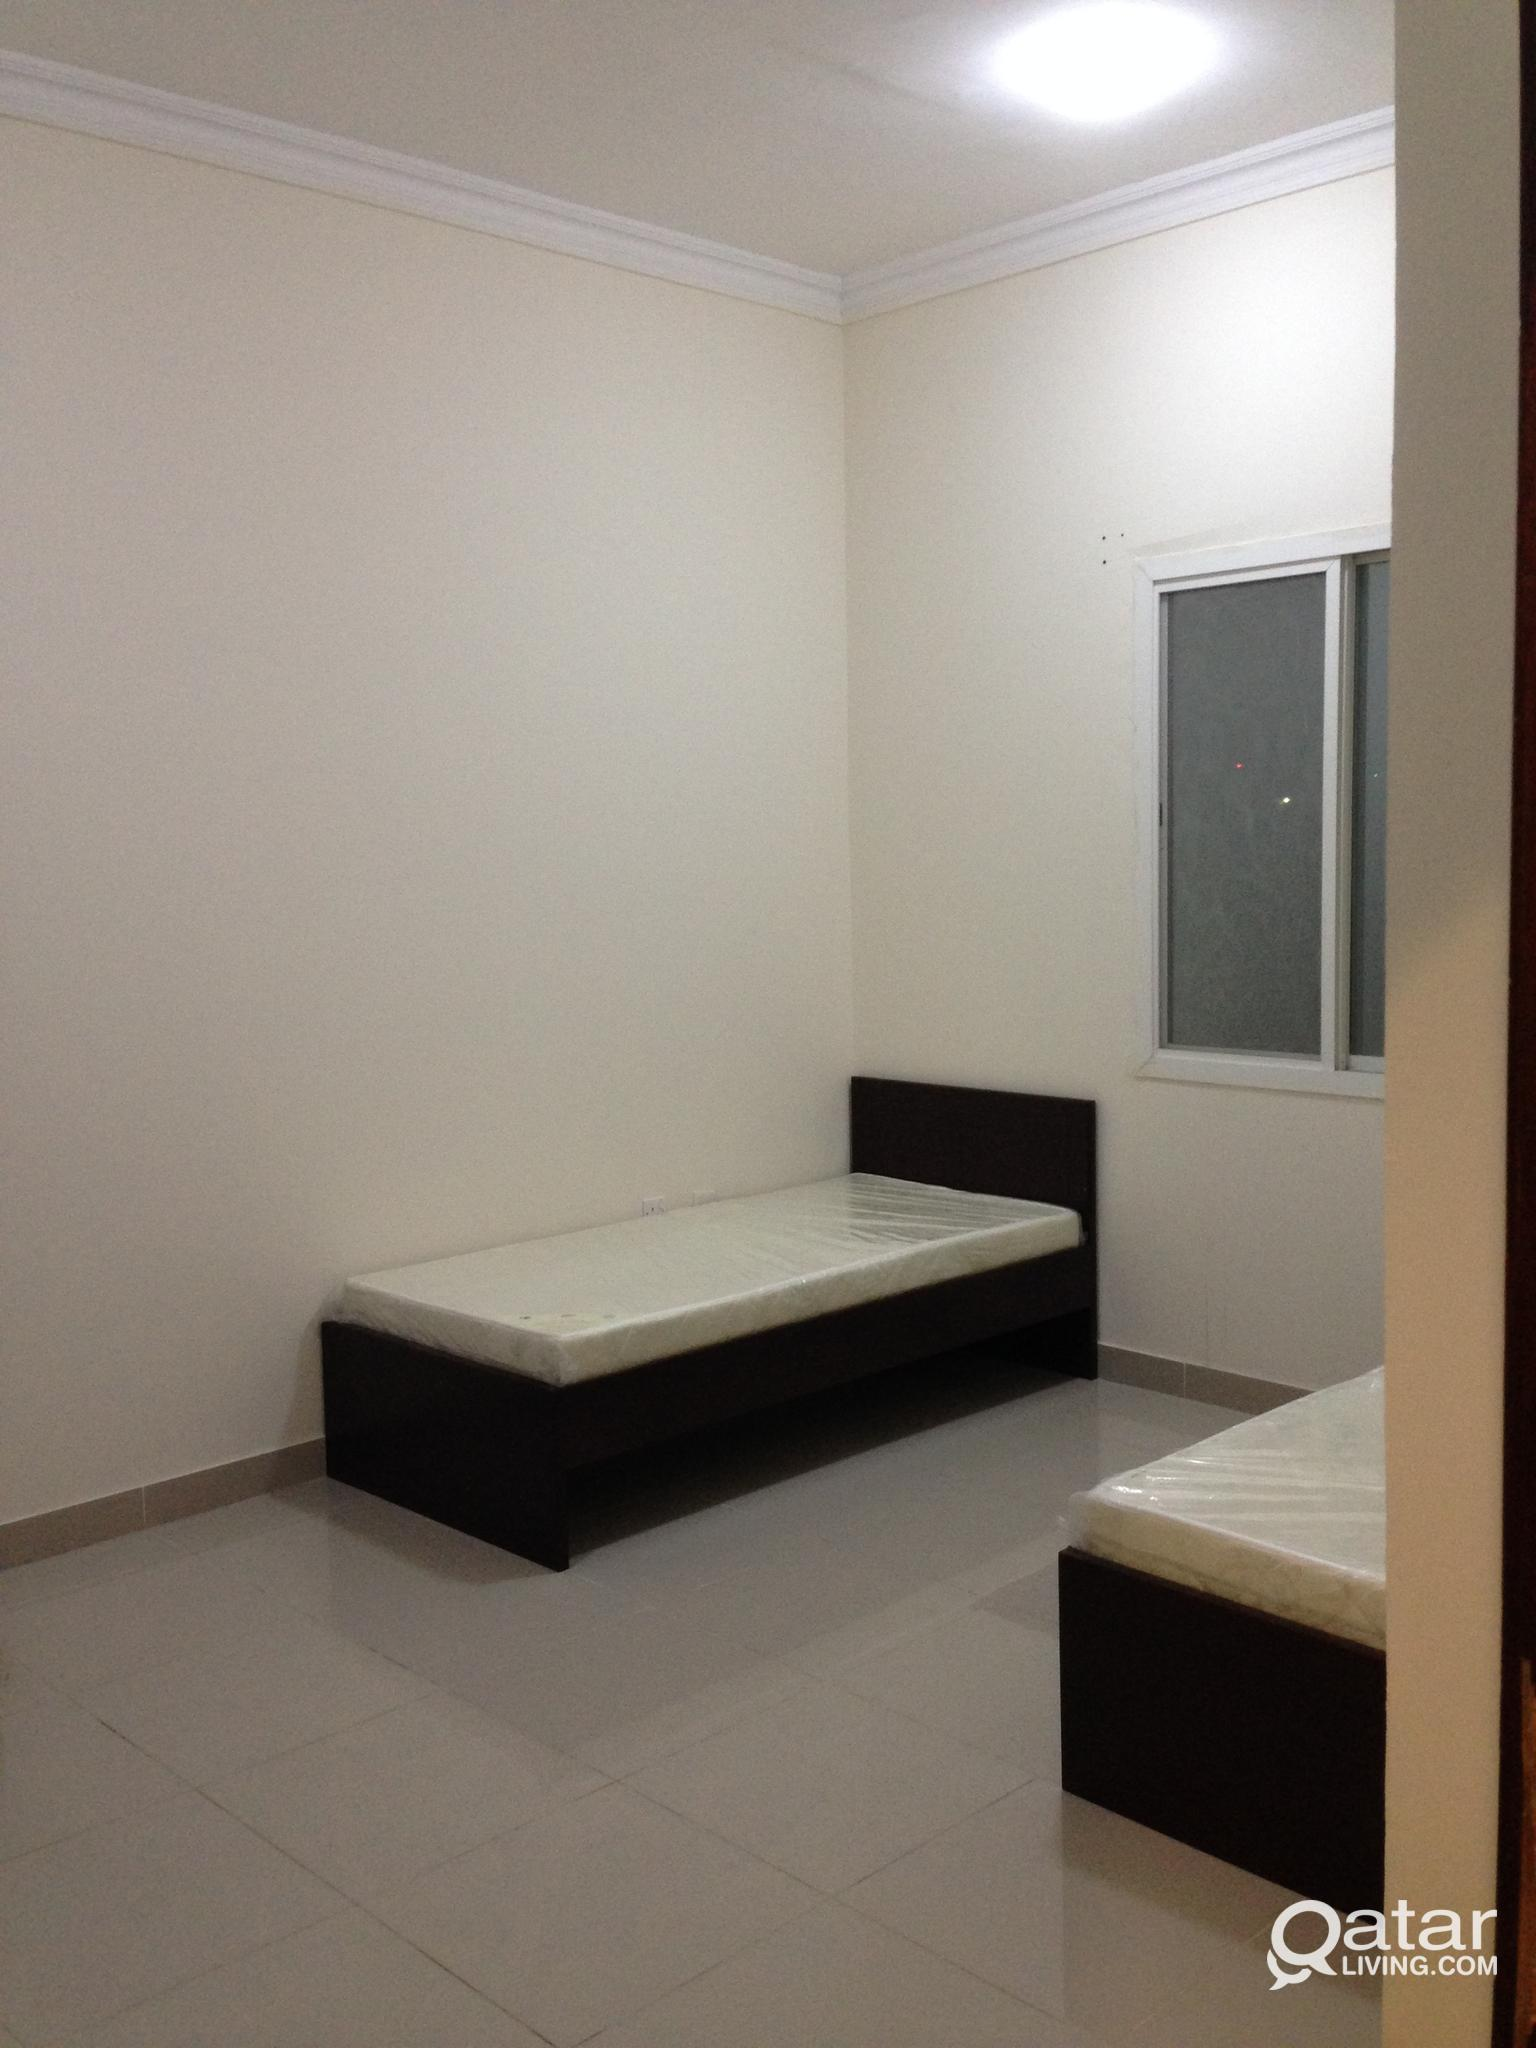 FULLY FURNISHED BED SPACE AVAILABLE IN A NEW FLAT